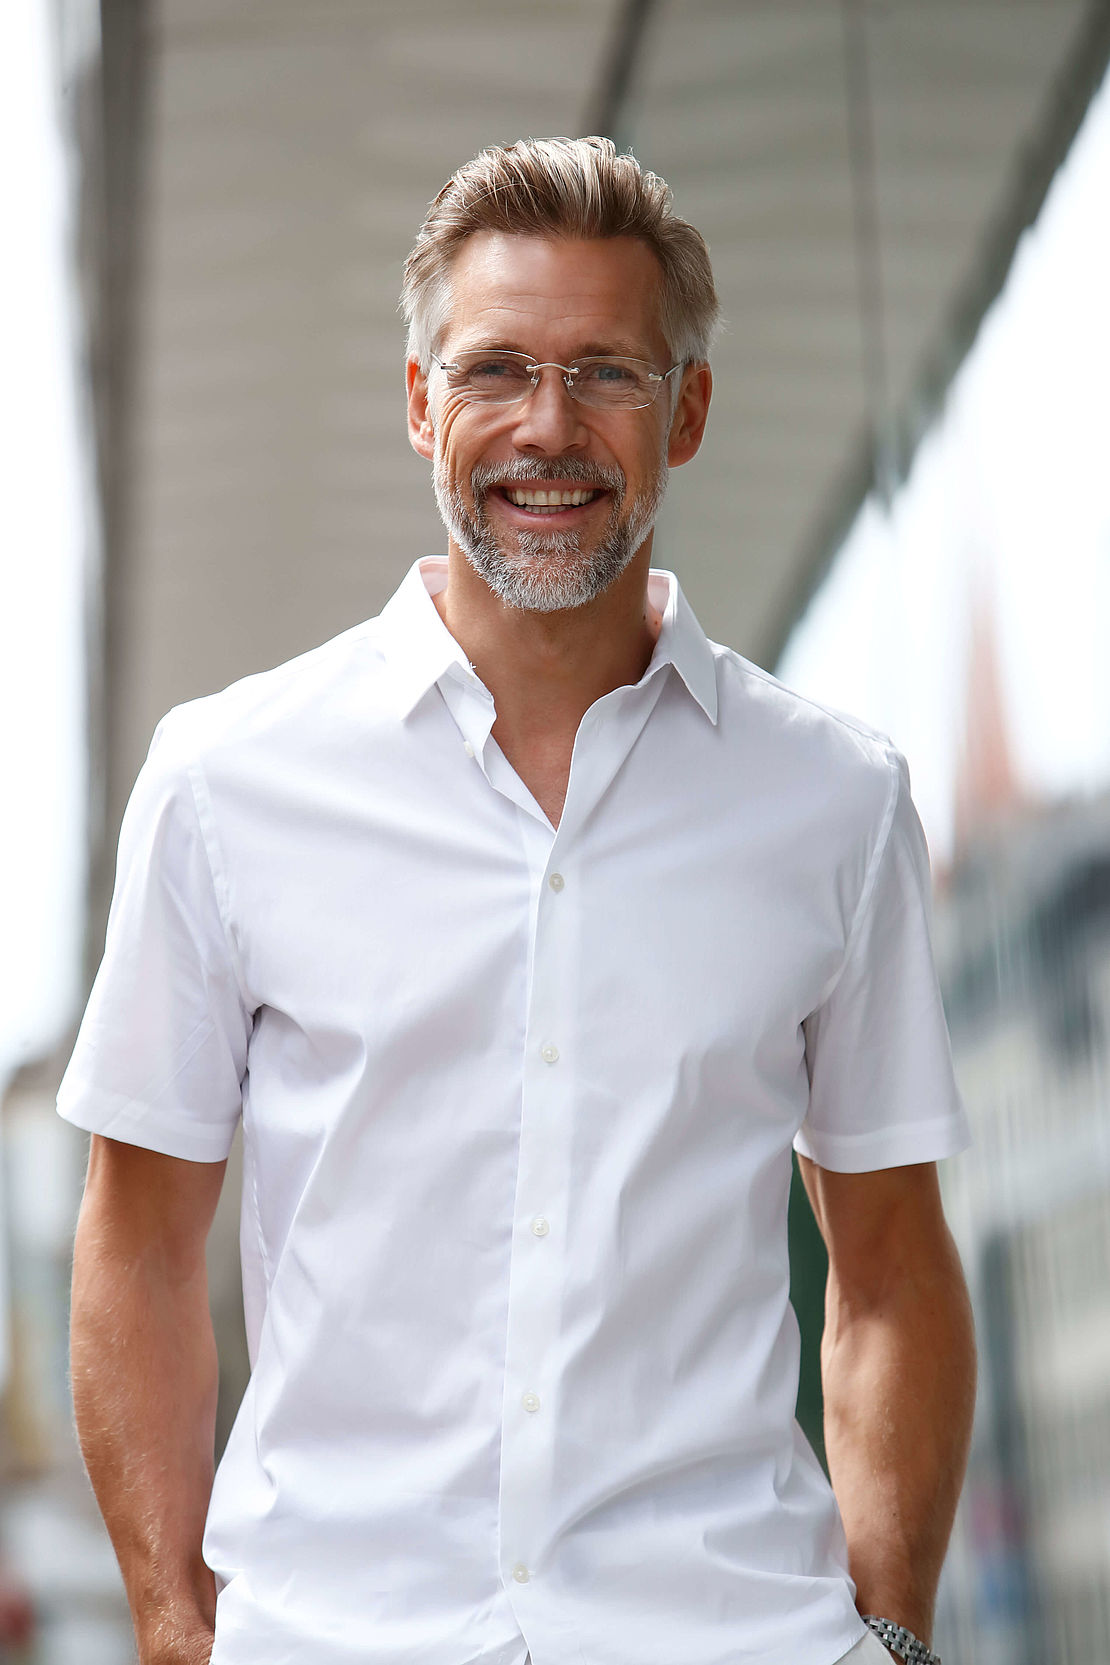 Man with rimless reading glasses Hamburg silver